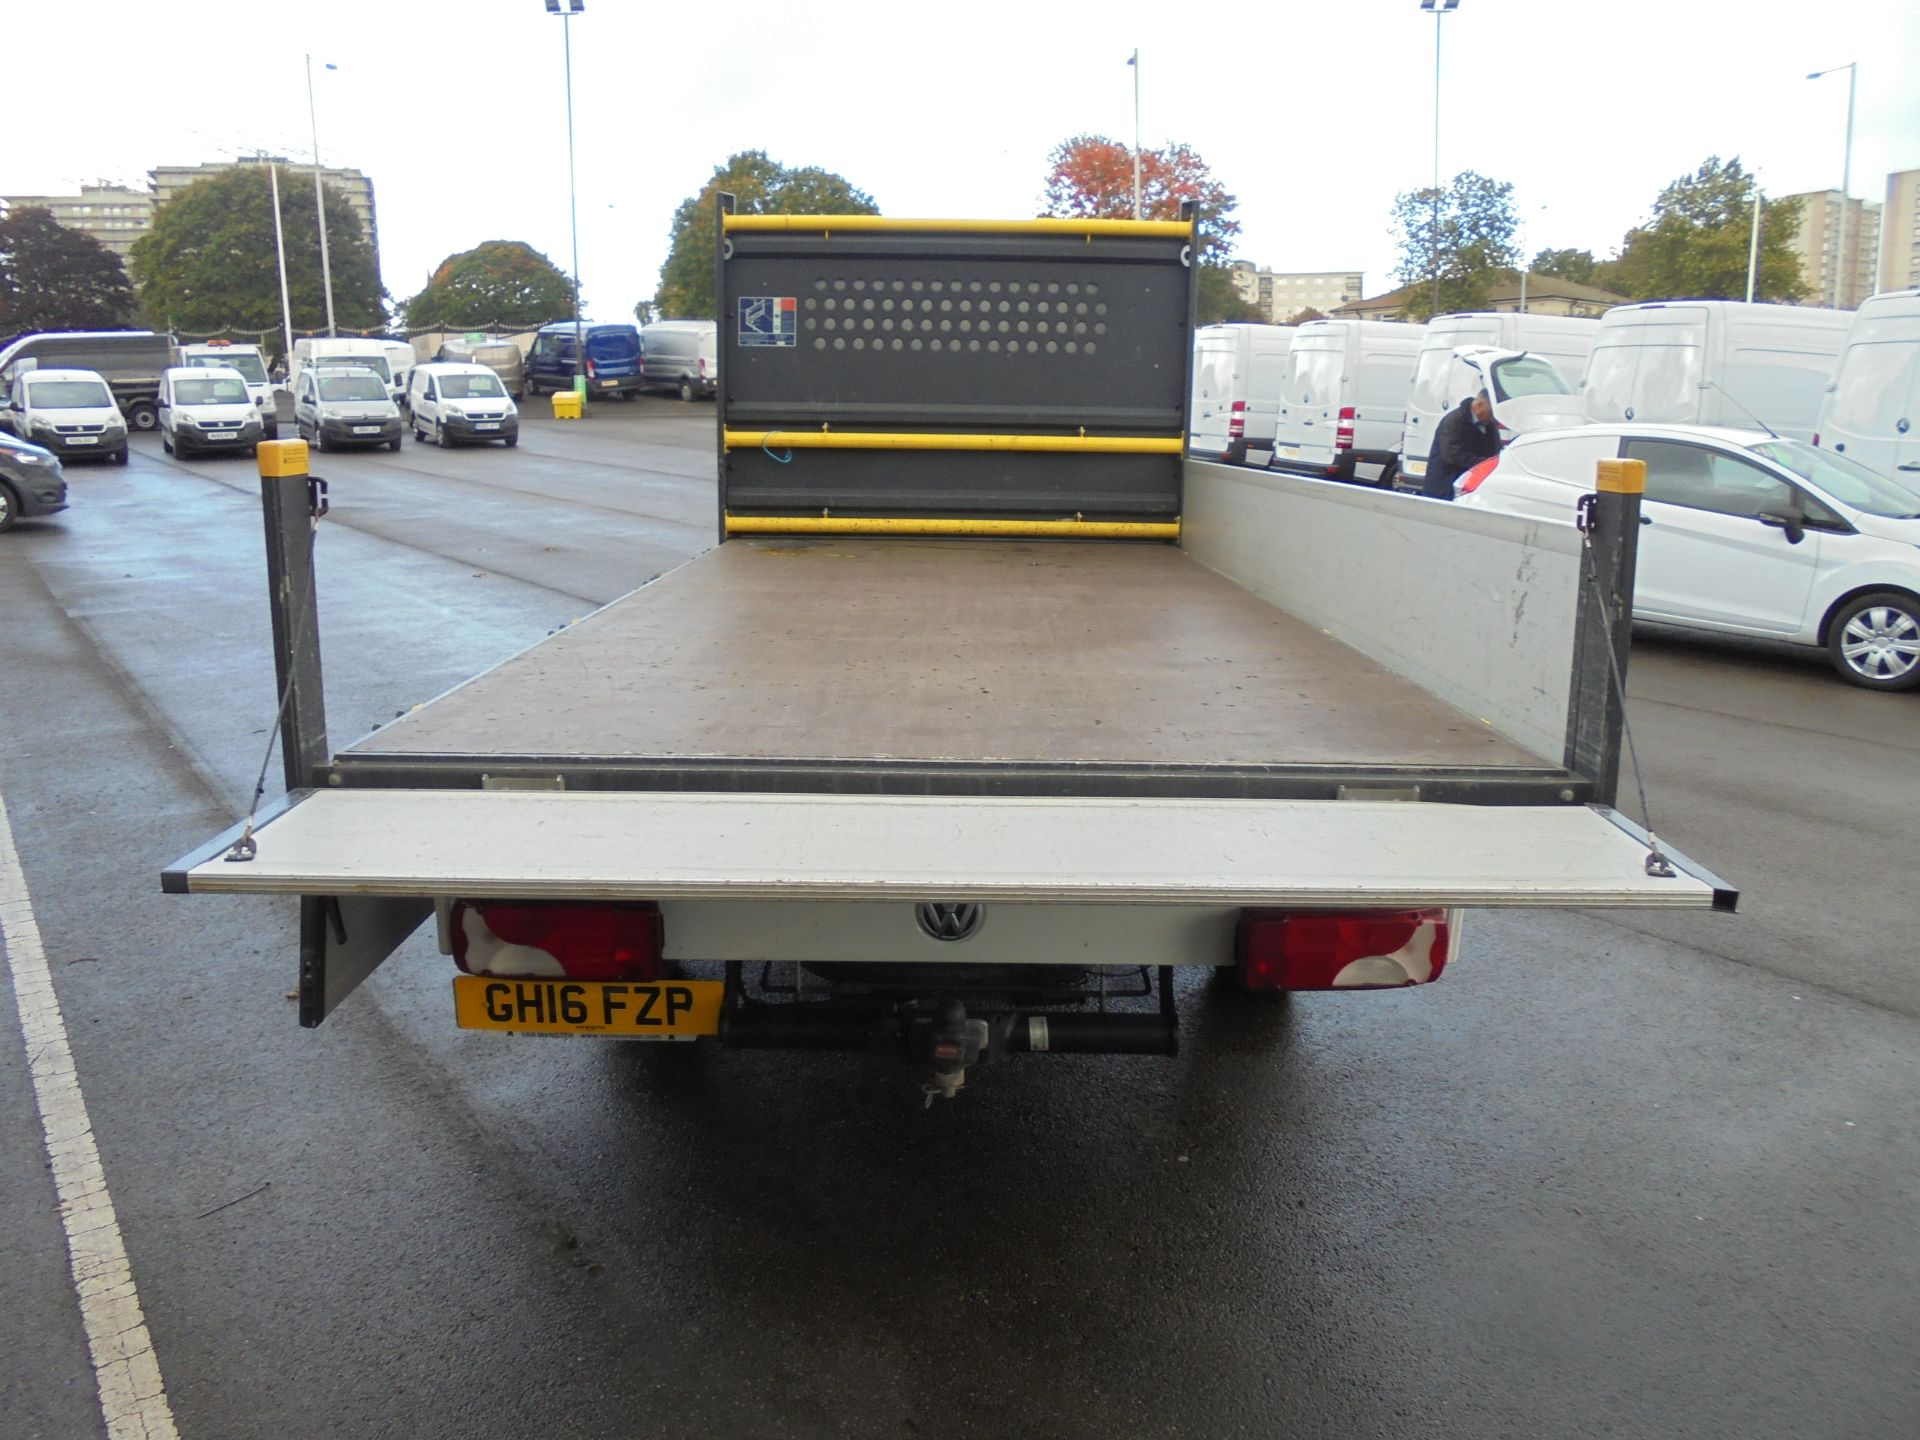 2016 Volkswagen Crafter 2.0 Tdi 136Ps Dropside (GH16FZP) Image 20